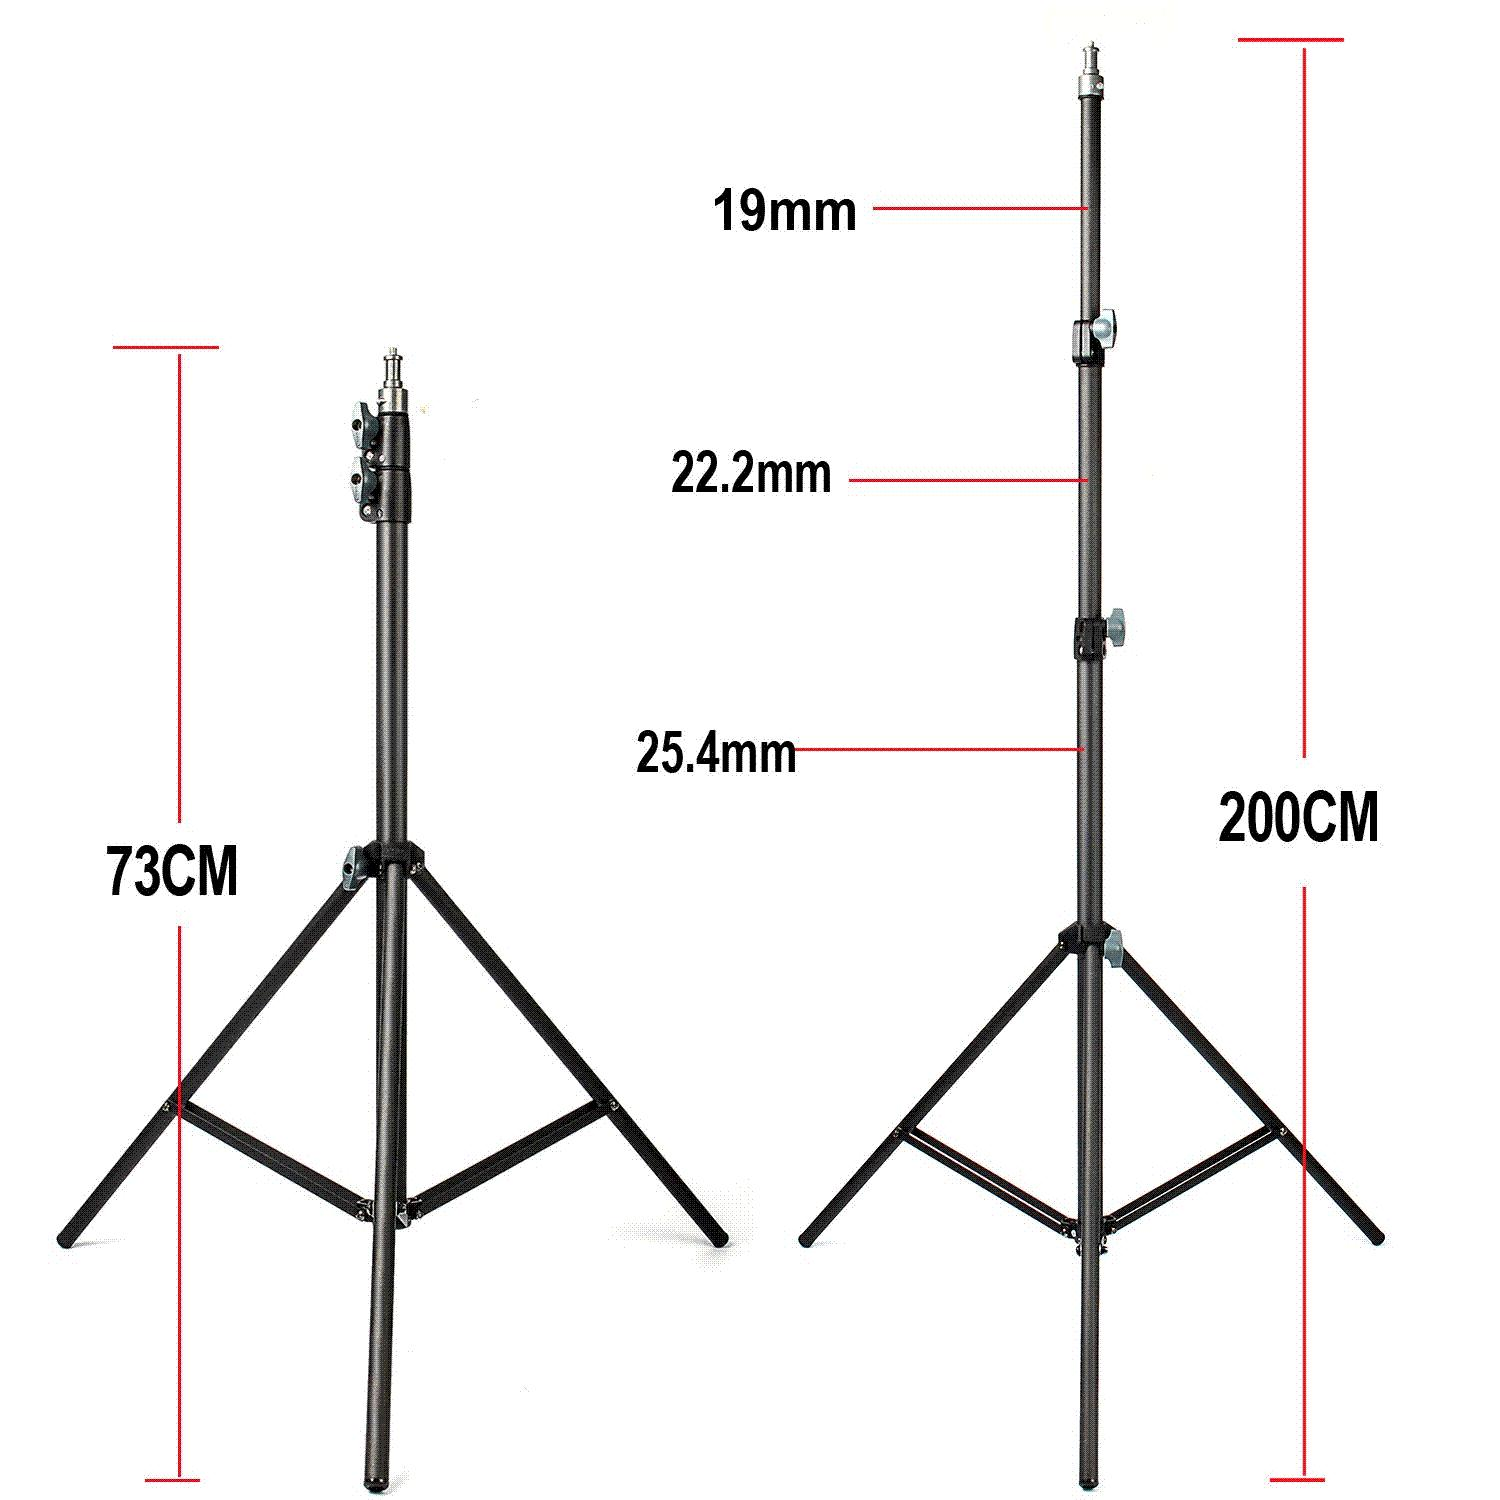 hight resolution of 2019 fotopal 2m light stand tripod with 1 4 screw head bearing weight 5kg for studio softbox flash umbrellas reflector lighting from xiaolei009